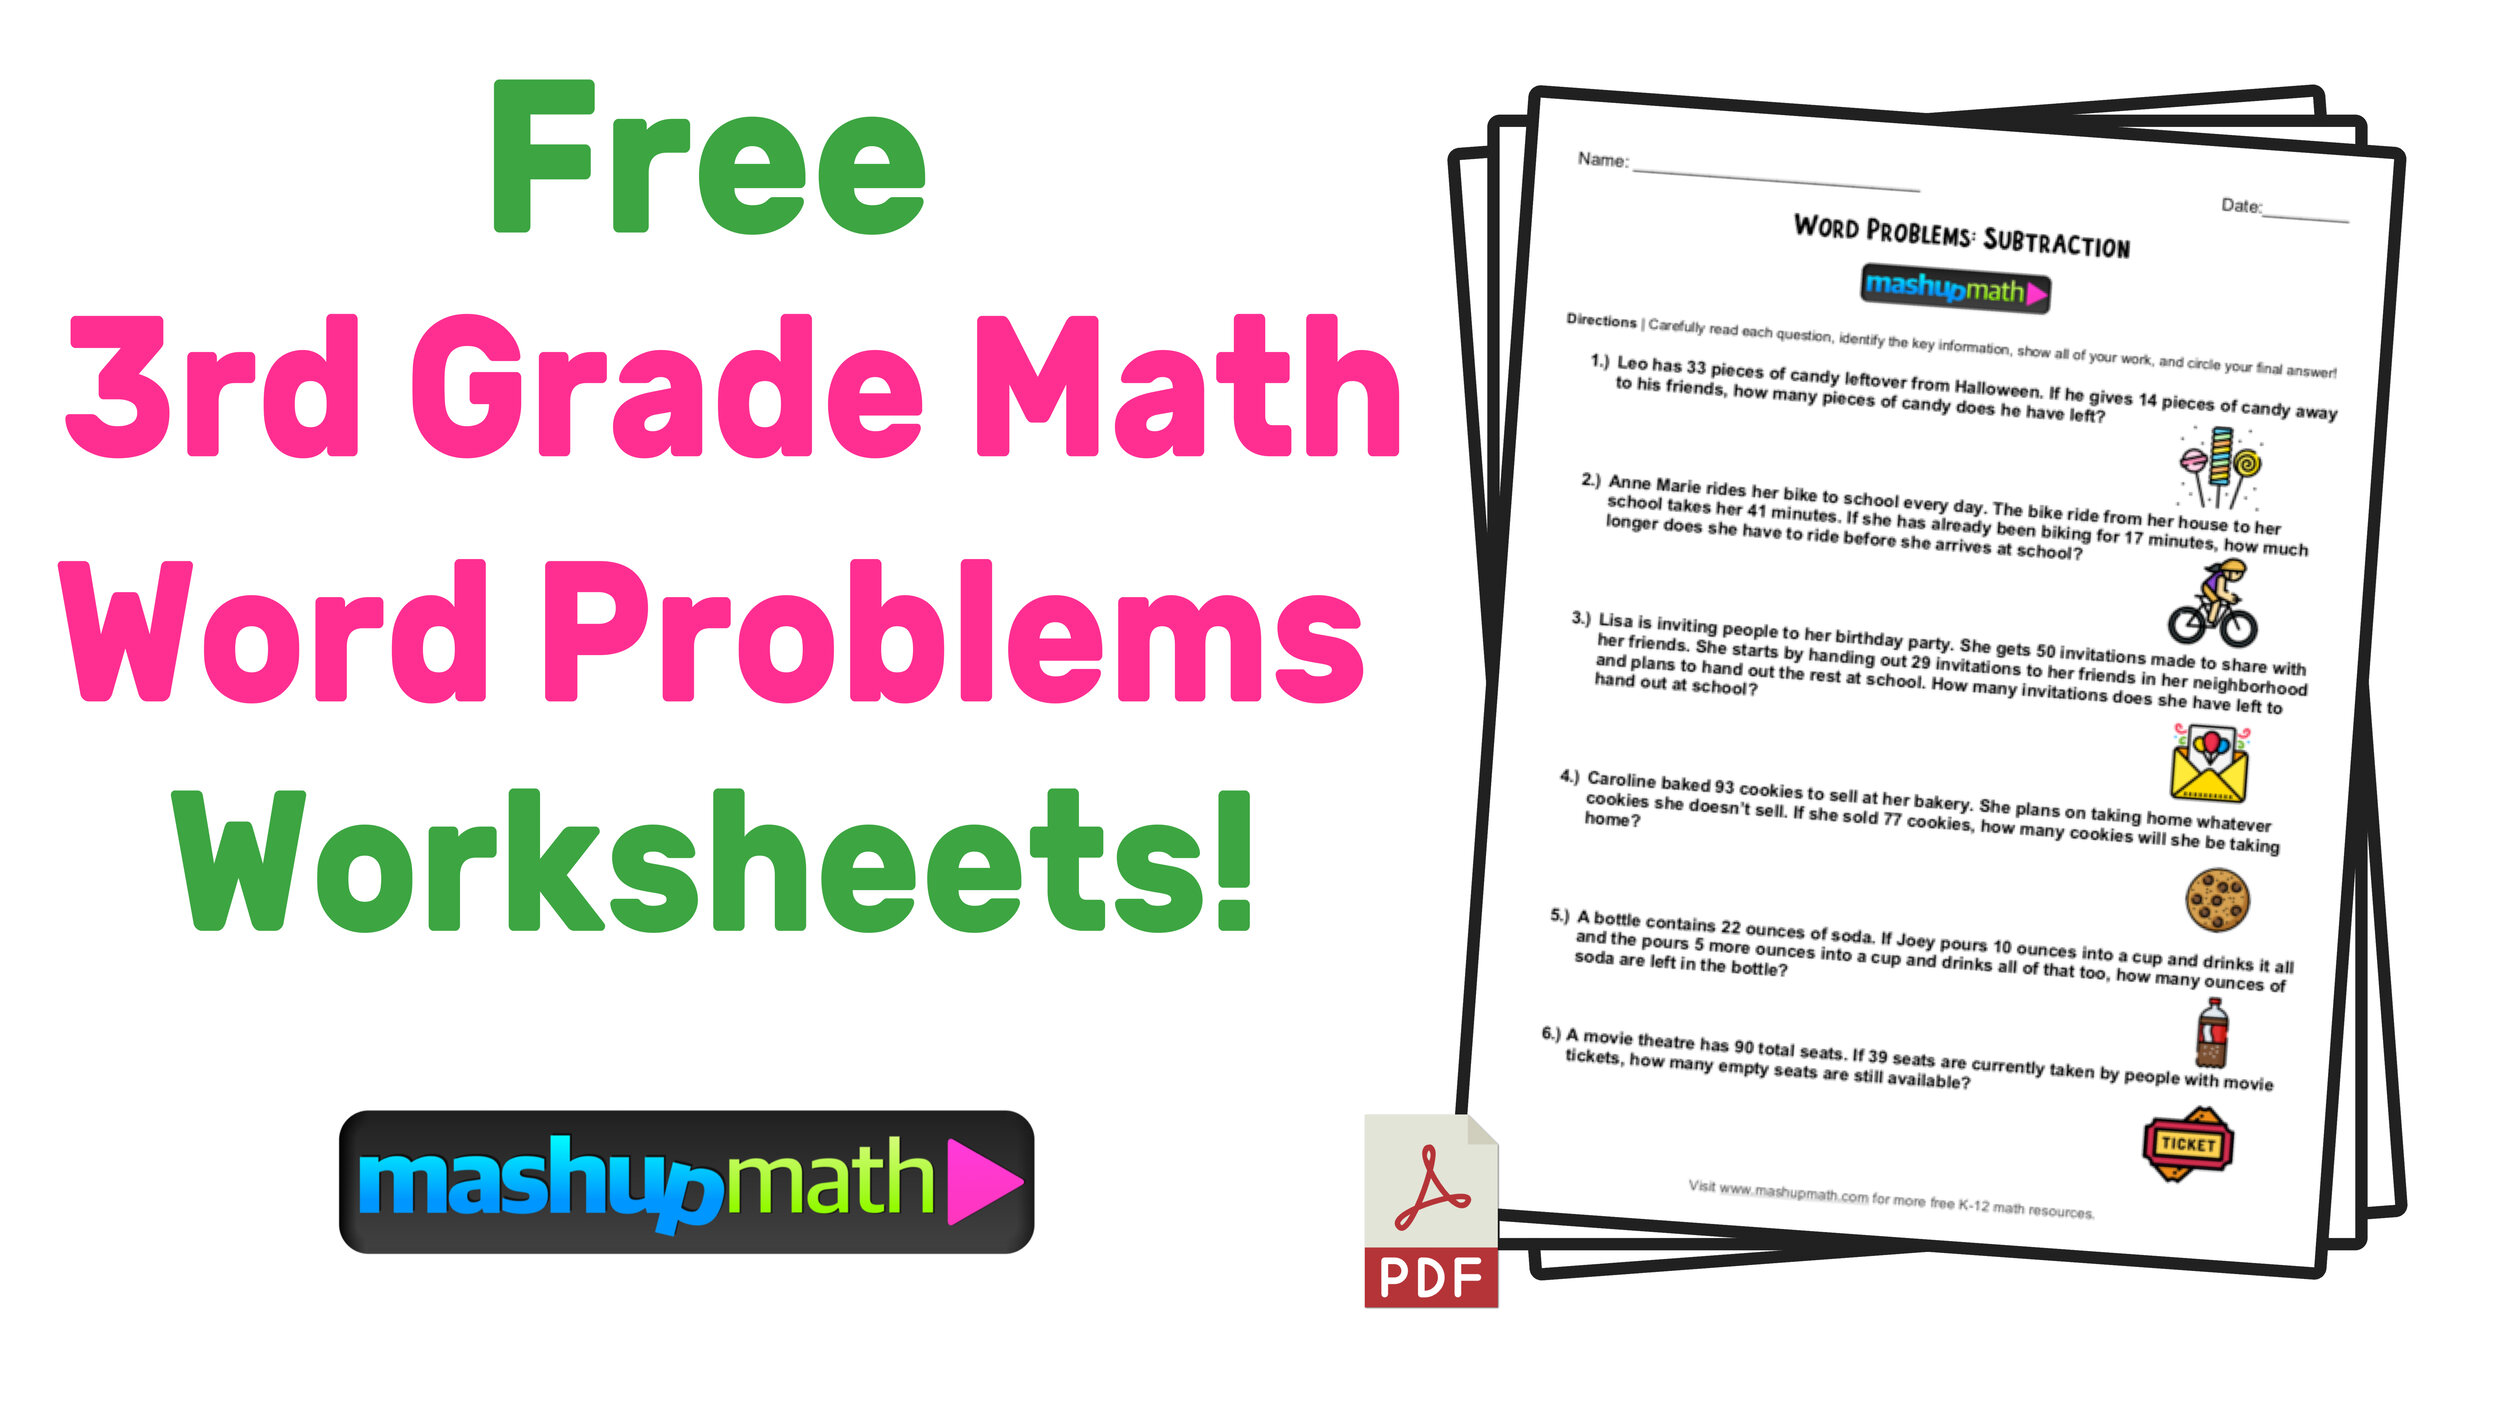 3rd Grade Math Word Problems: Free Worksheets with Answers — Mashup Math [ 844 x 1500 Pixel ]